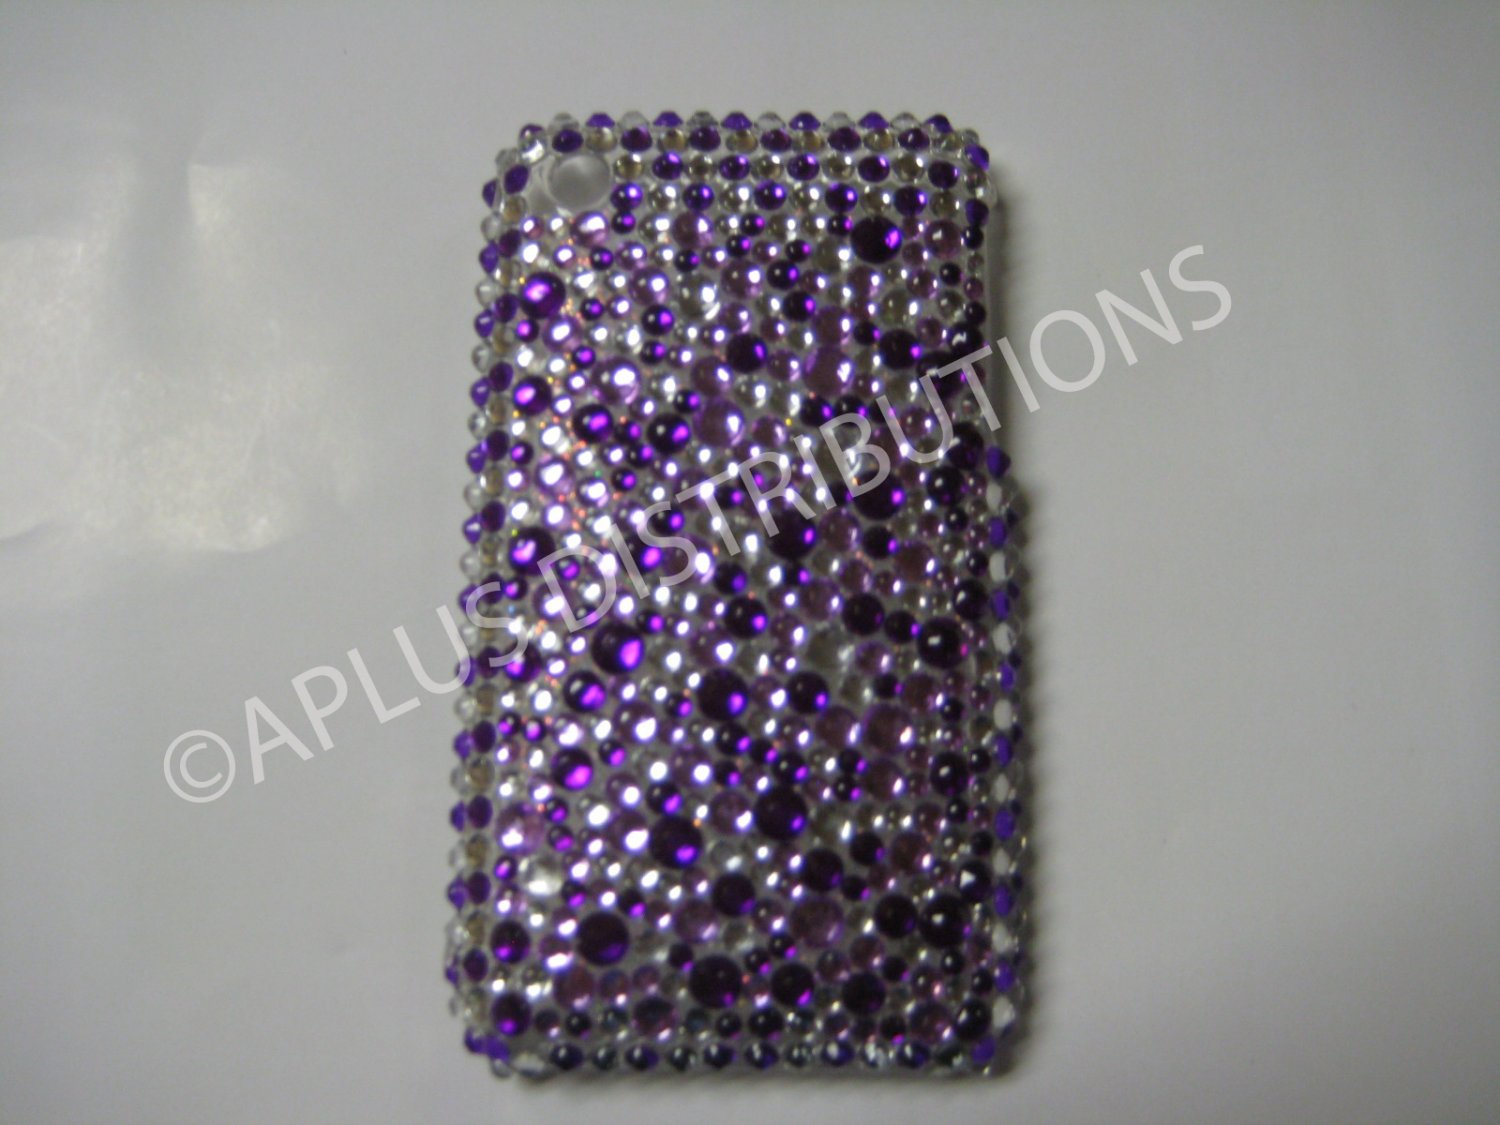 New Purple Multi-Diamonds Design Crystal Bling Diamond Case For iPhone 3G 3Gs - (0016)